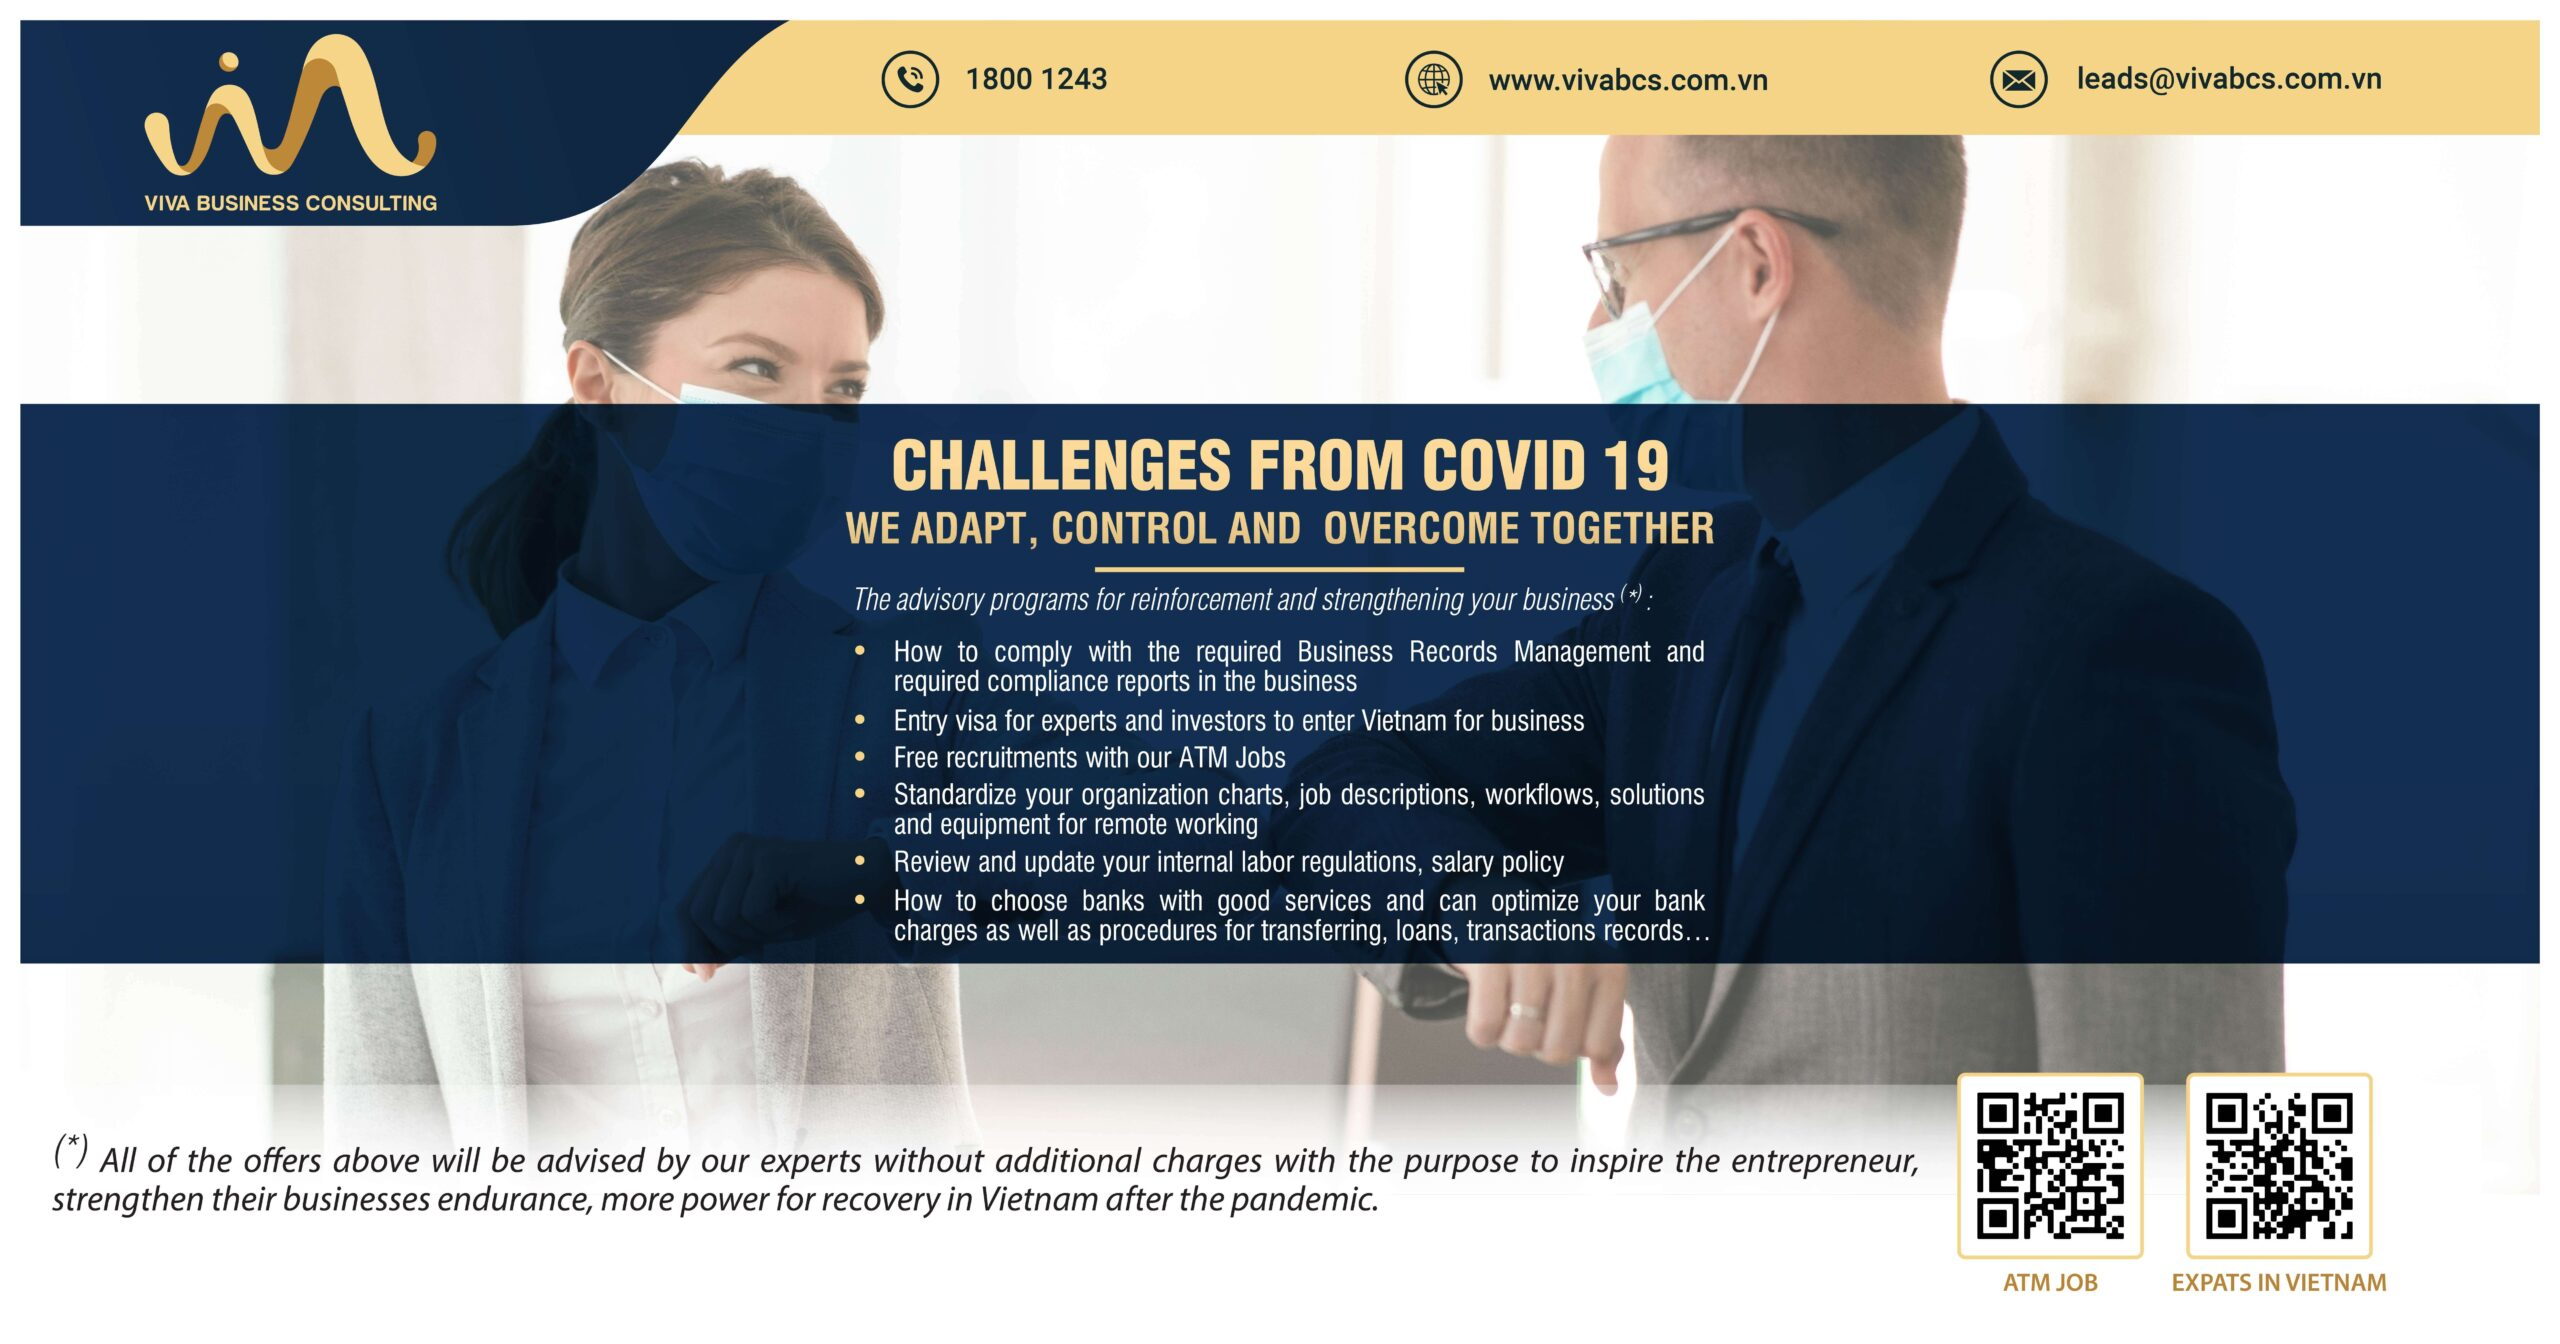 Challenges from COVID-19: Together we adapt, control & overcome